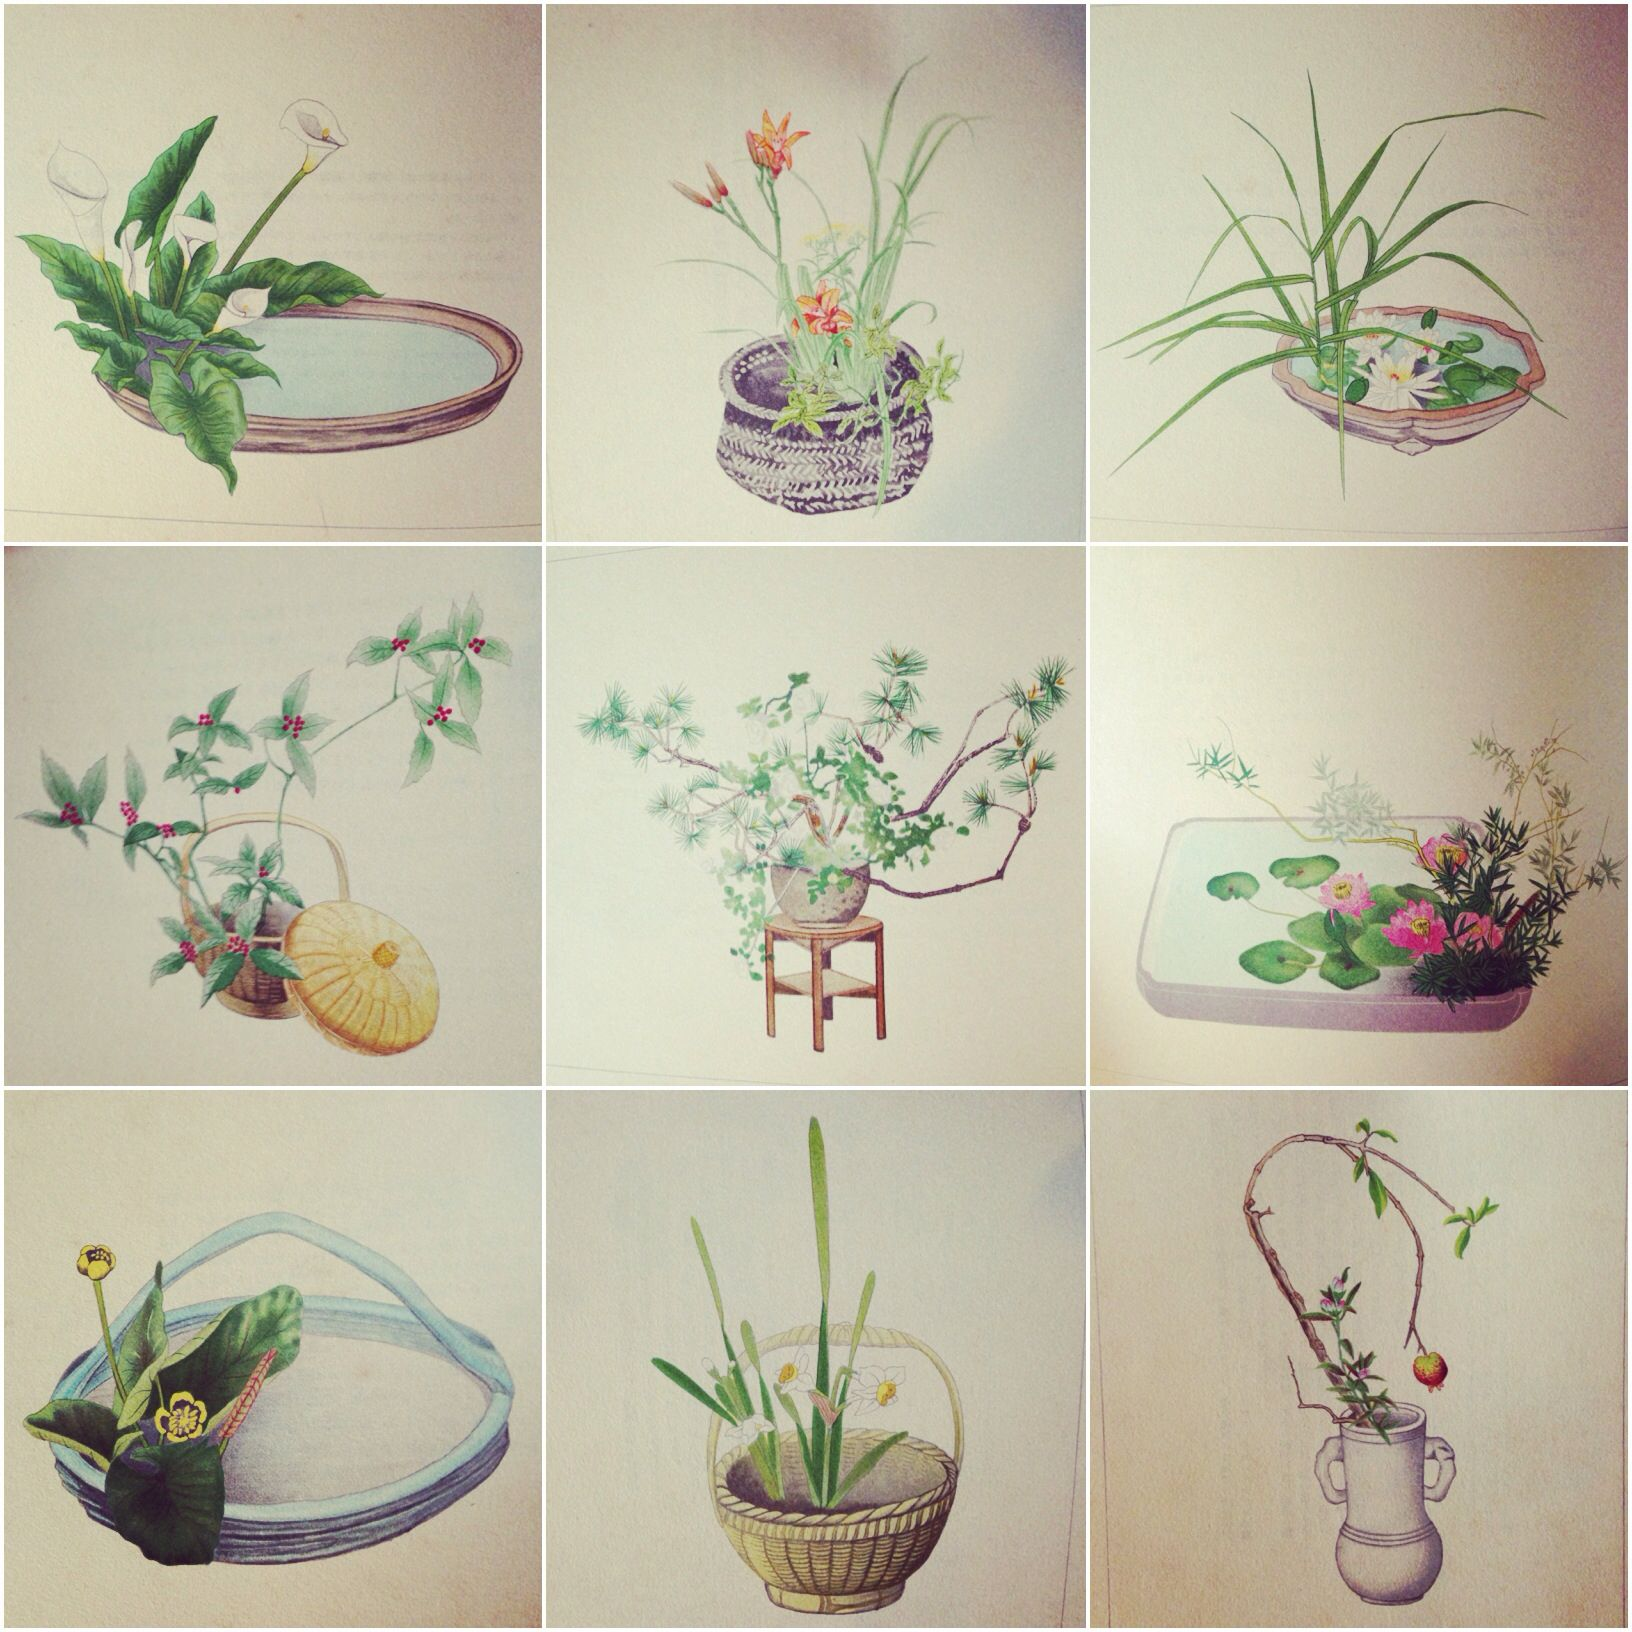 Illustrations from ua new selection of modern flower arrangements